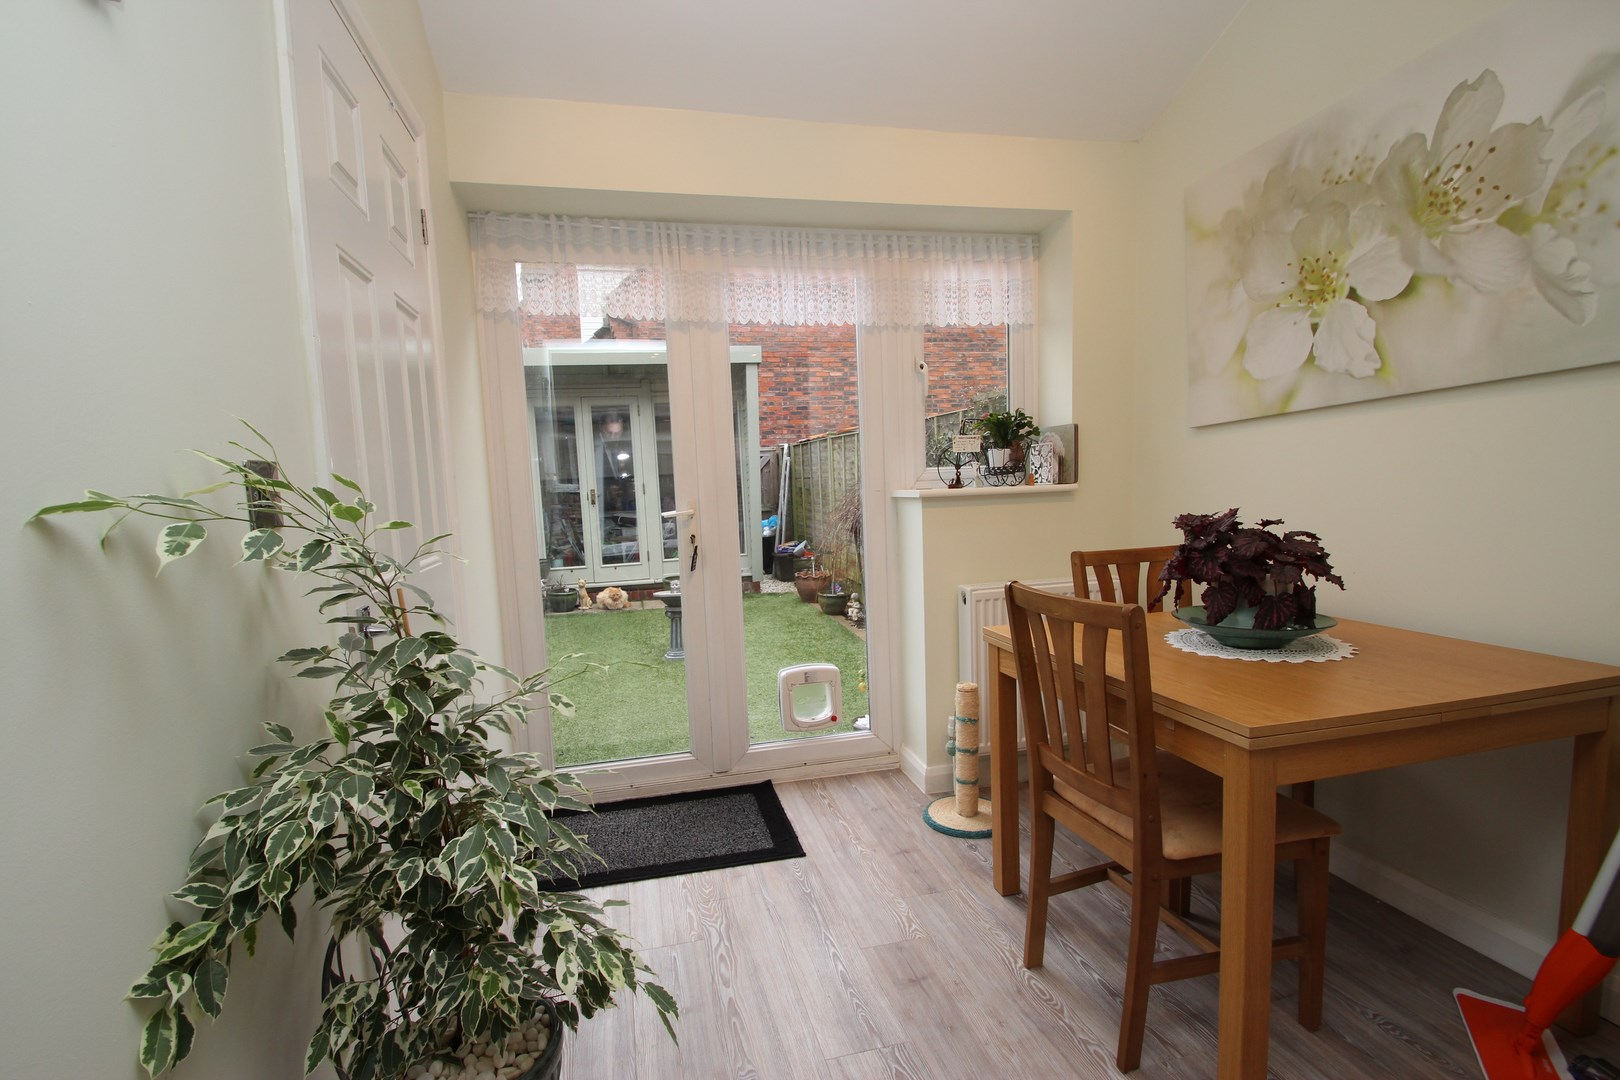 2 Bedroom House In Christchurch Estate Agents Mudeford